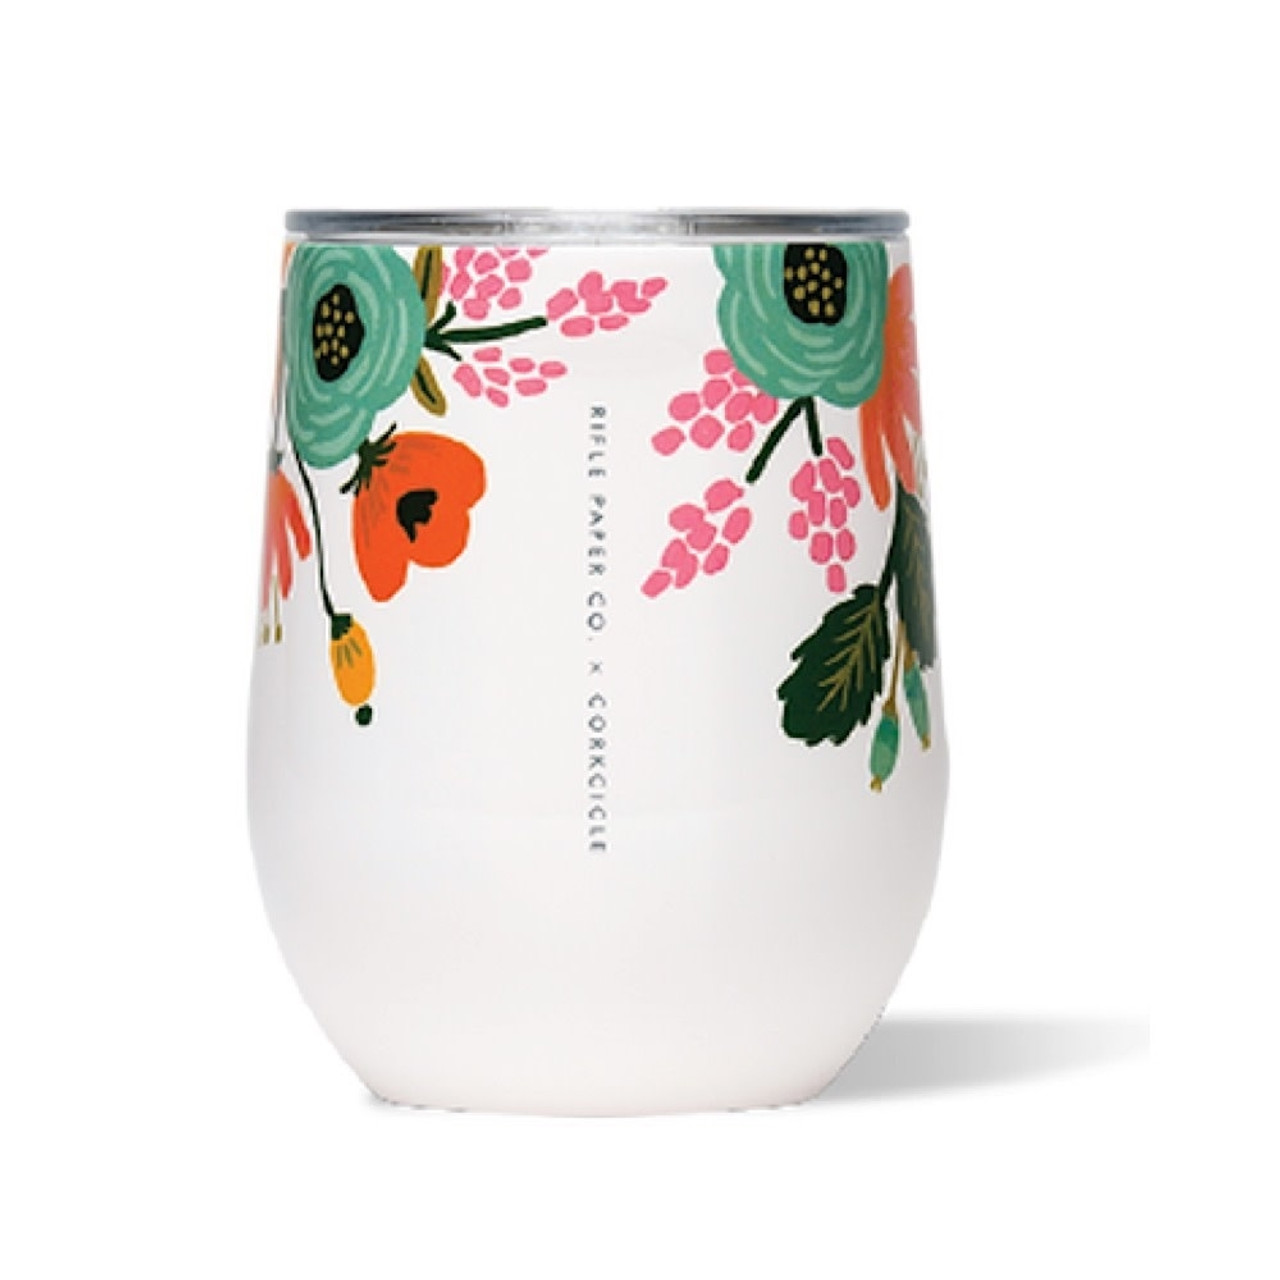 Portable Wine Glass - Insulated - Lively Floral